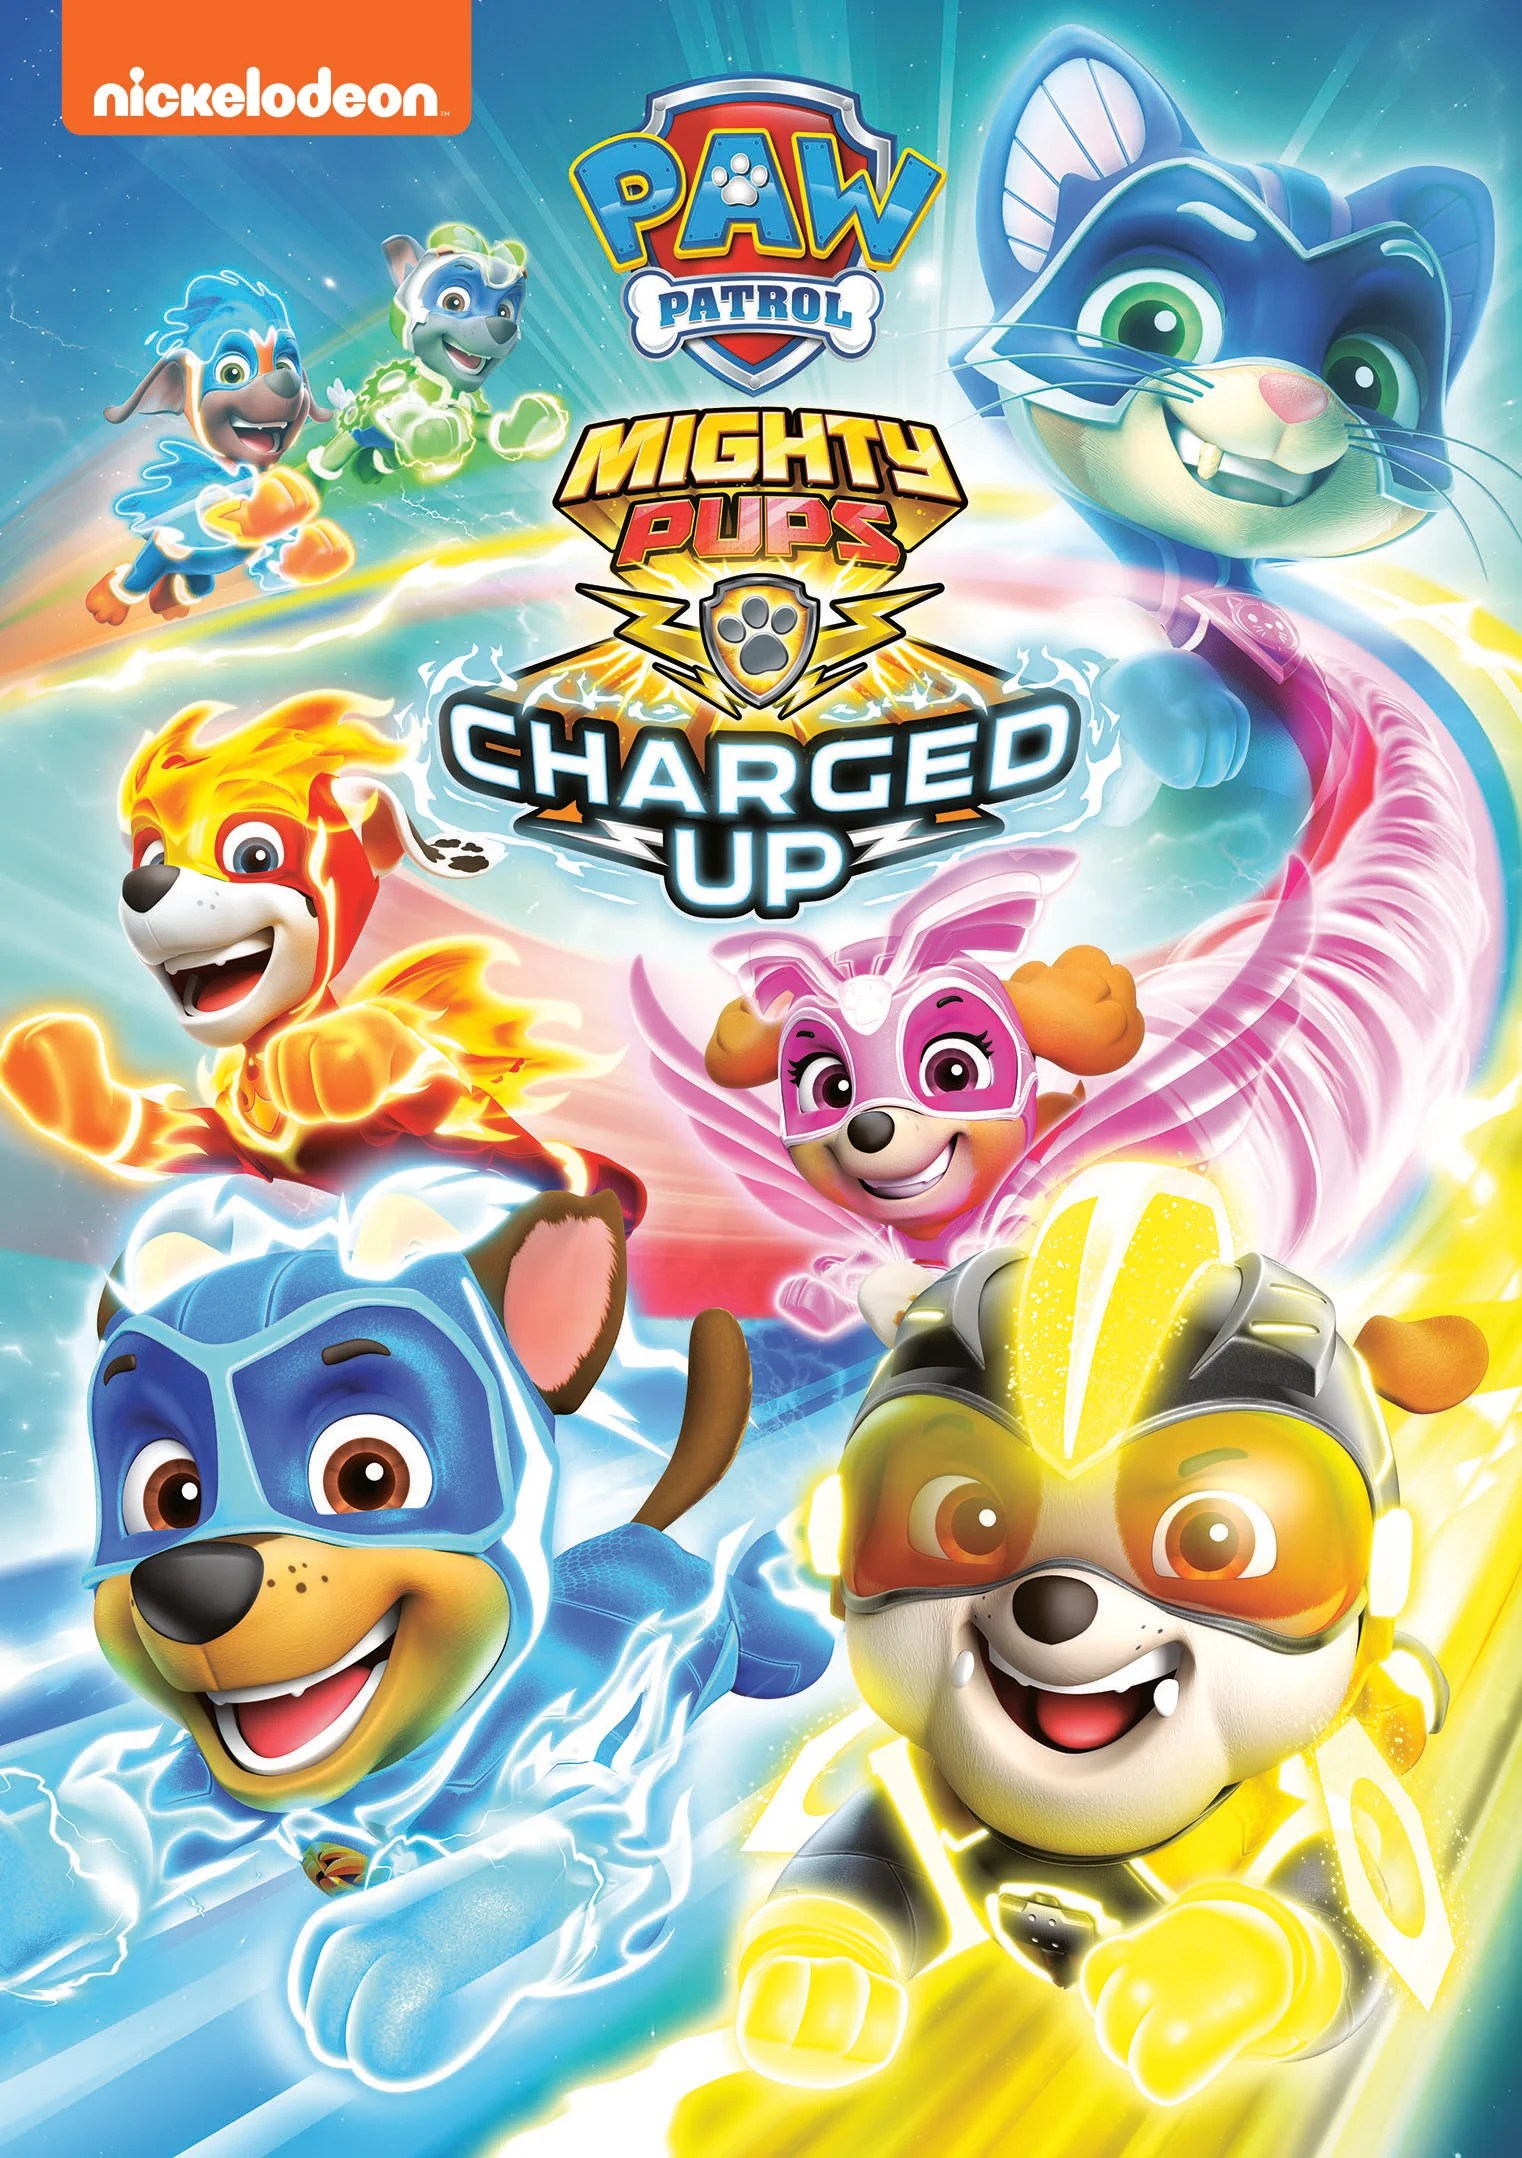 PAW Patrol: Charged Up DVD. The paw-some Mighty Pups are back for next level action-packed adventures in PAW Patrol: Mighty Pups Charged Up. With this epic new DVD collection, fans can follow the Mighty Pups on daring rescue missions as they use their new superpowers and charged-up hover vehicles to save Adventure Bay from a brand-new baddie the Copycat.